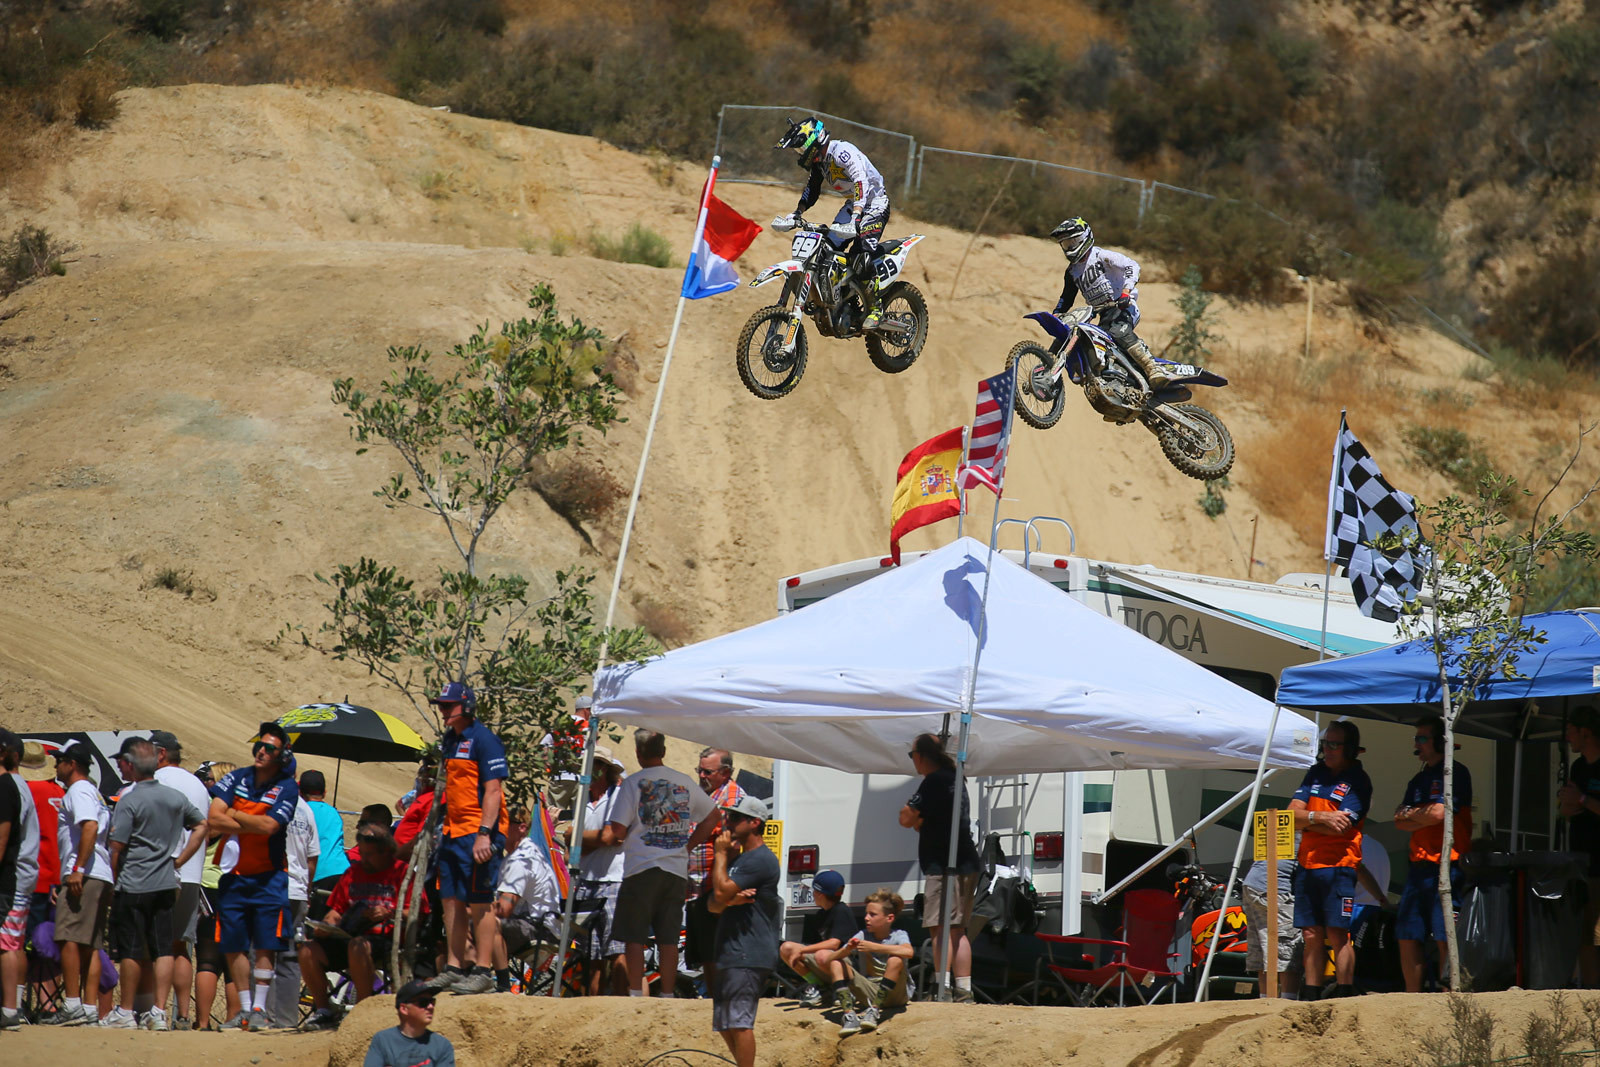 Max Anstie and Mitchell Harrison - Photo Blast: MXGP of the USA - Motocross Pictures - Vital MX